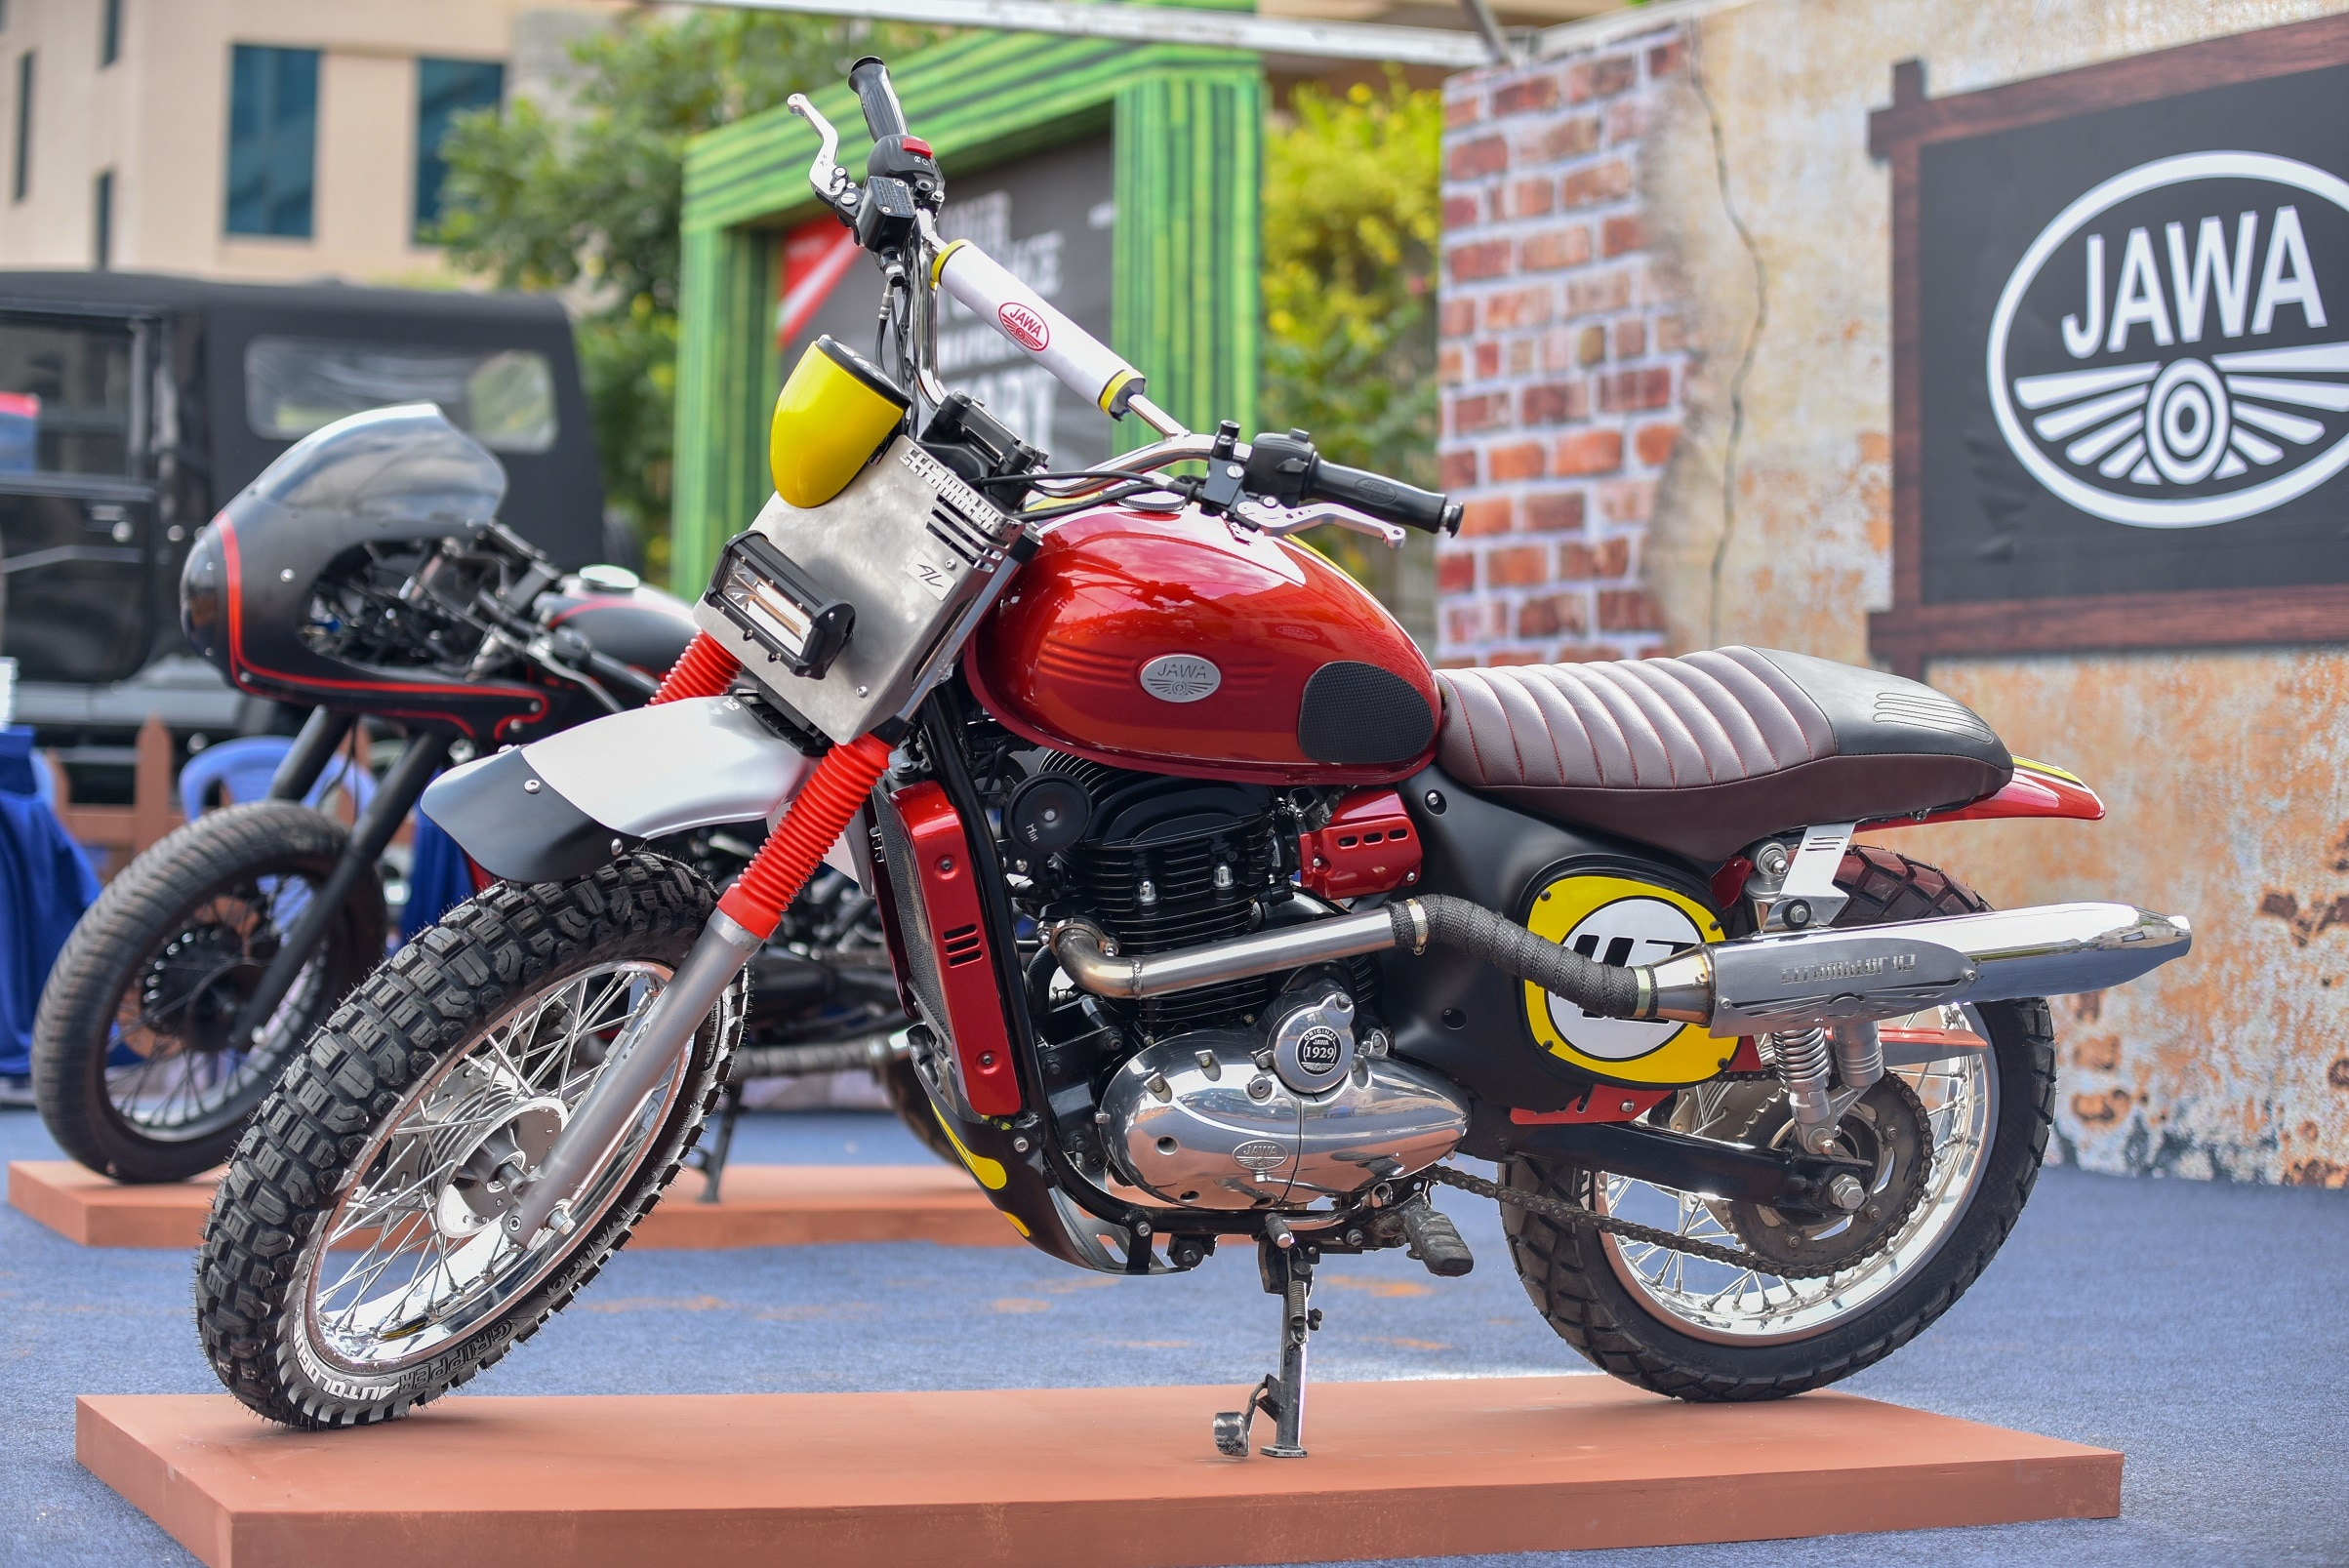 Jawa 42 Price, Mileage, Images, Colours, Specs, Reviews